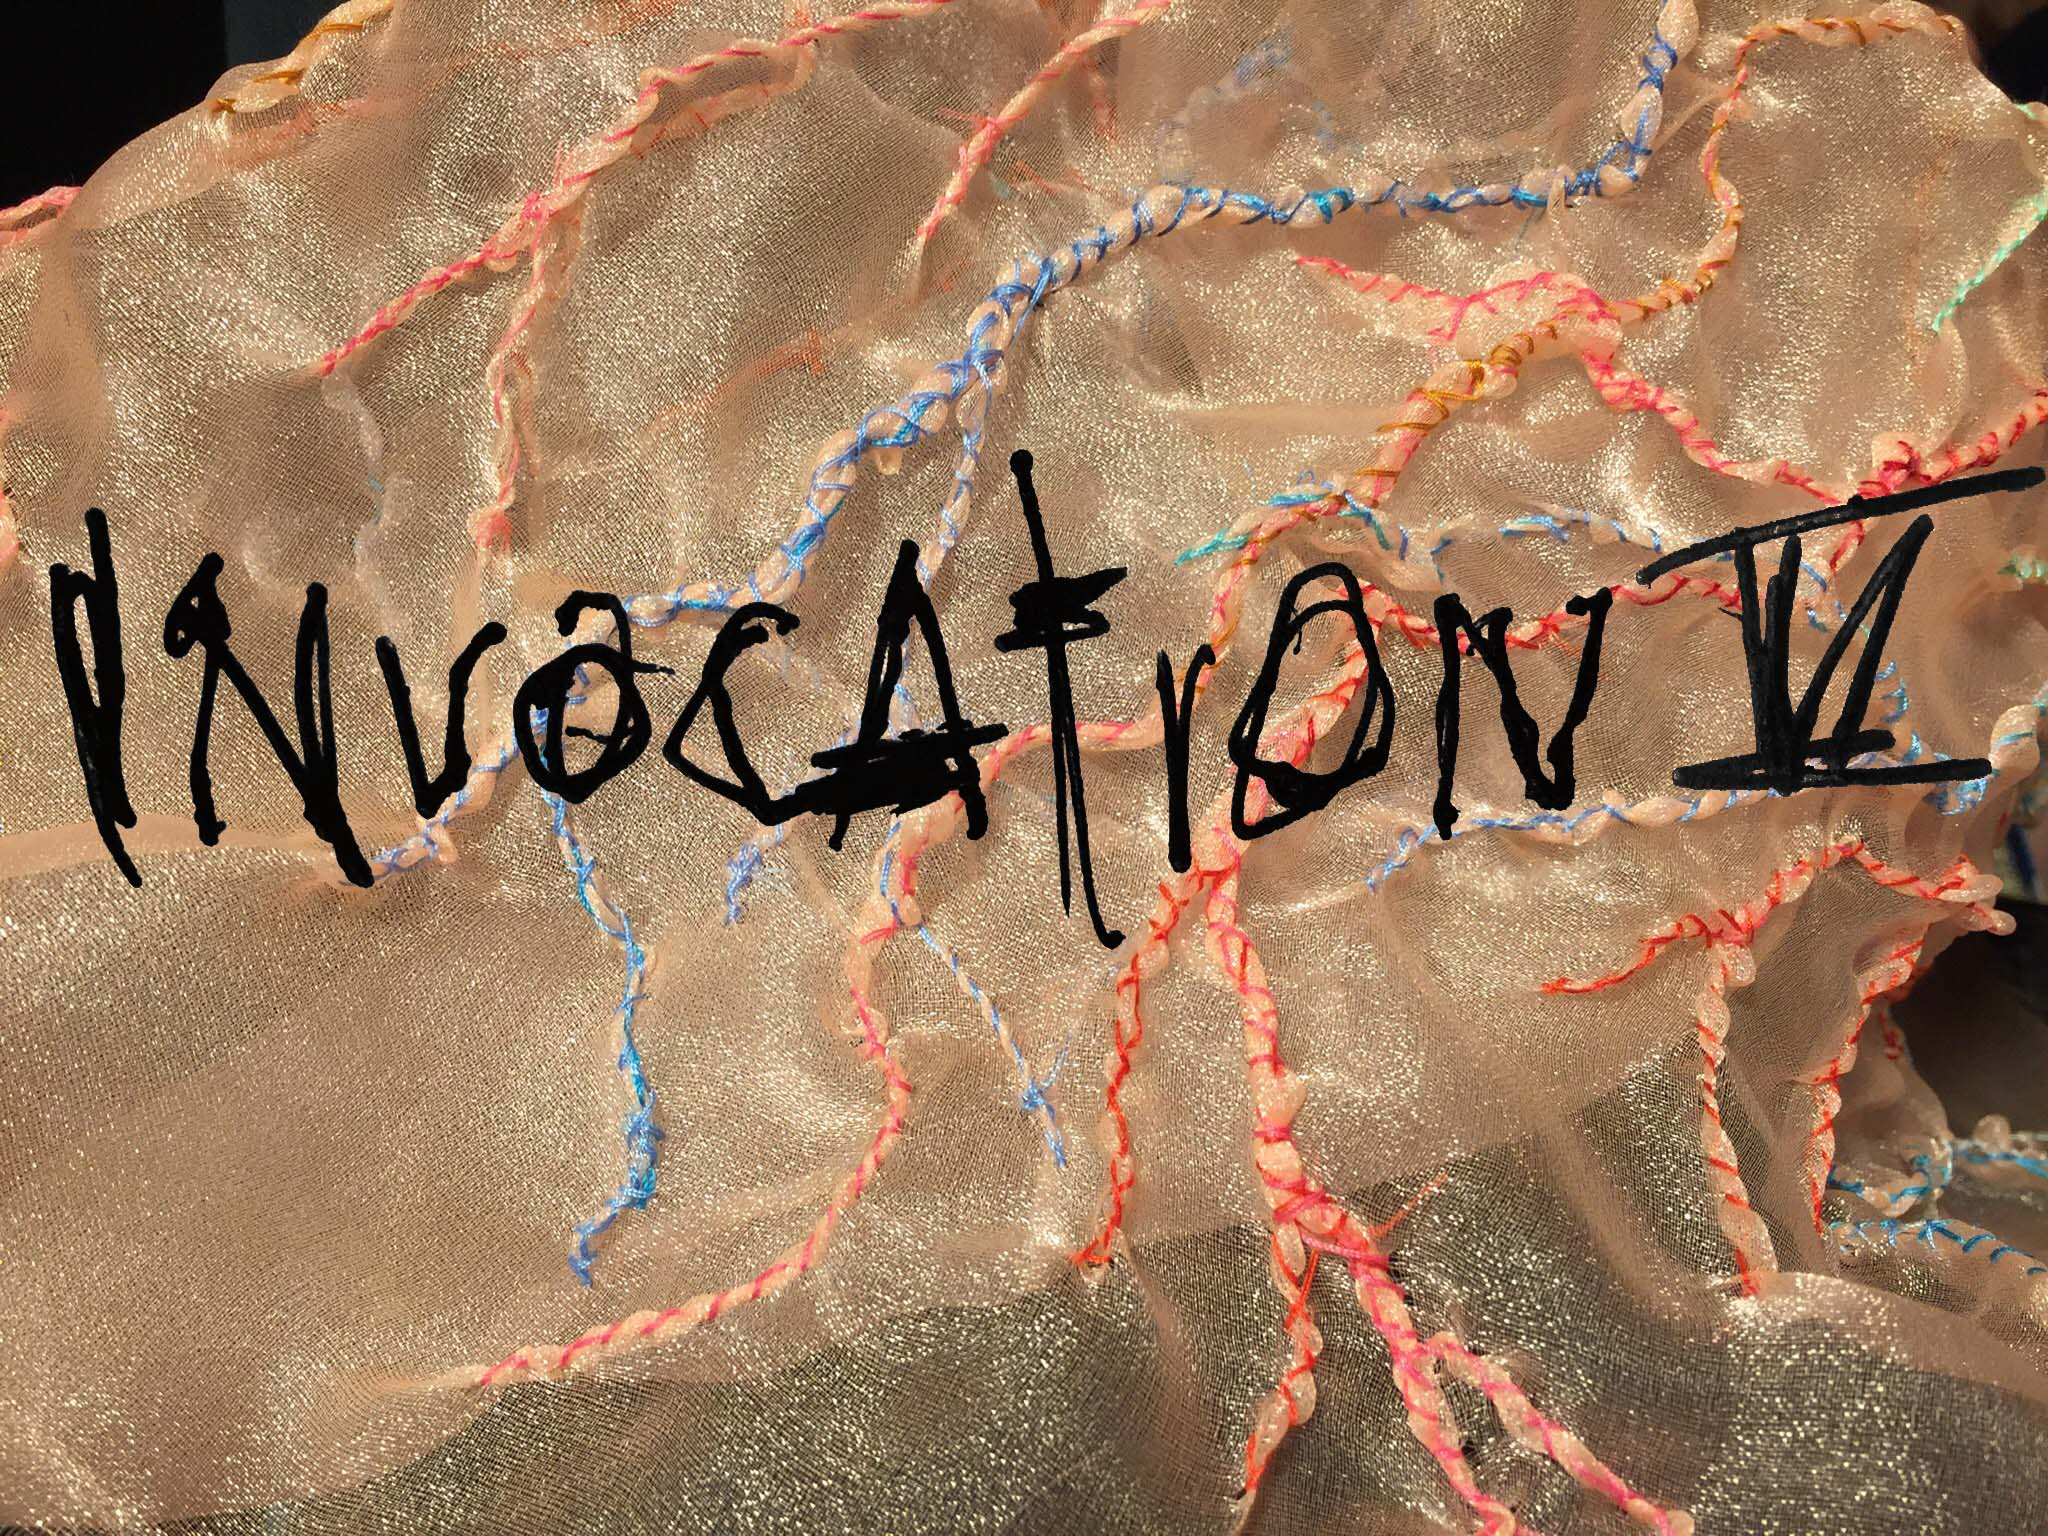 Interview with Eli Wallace and Drew Wesely about Invocation series